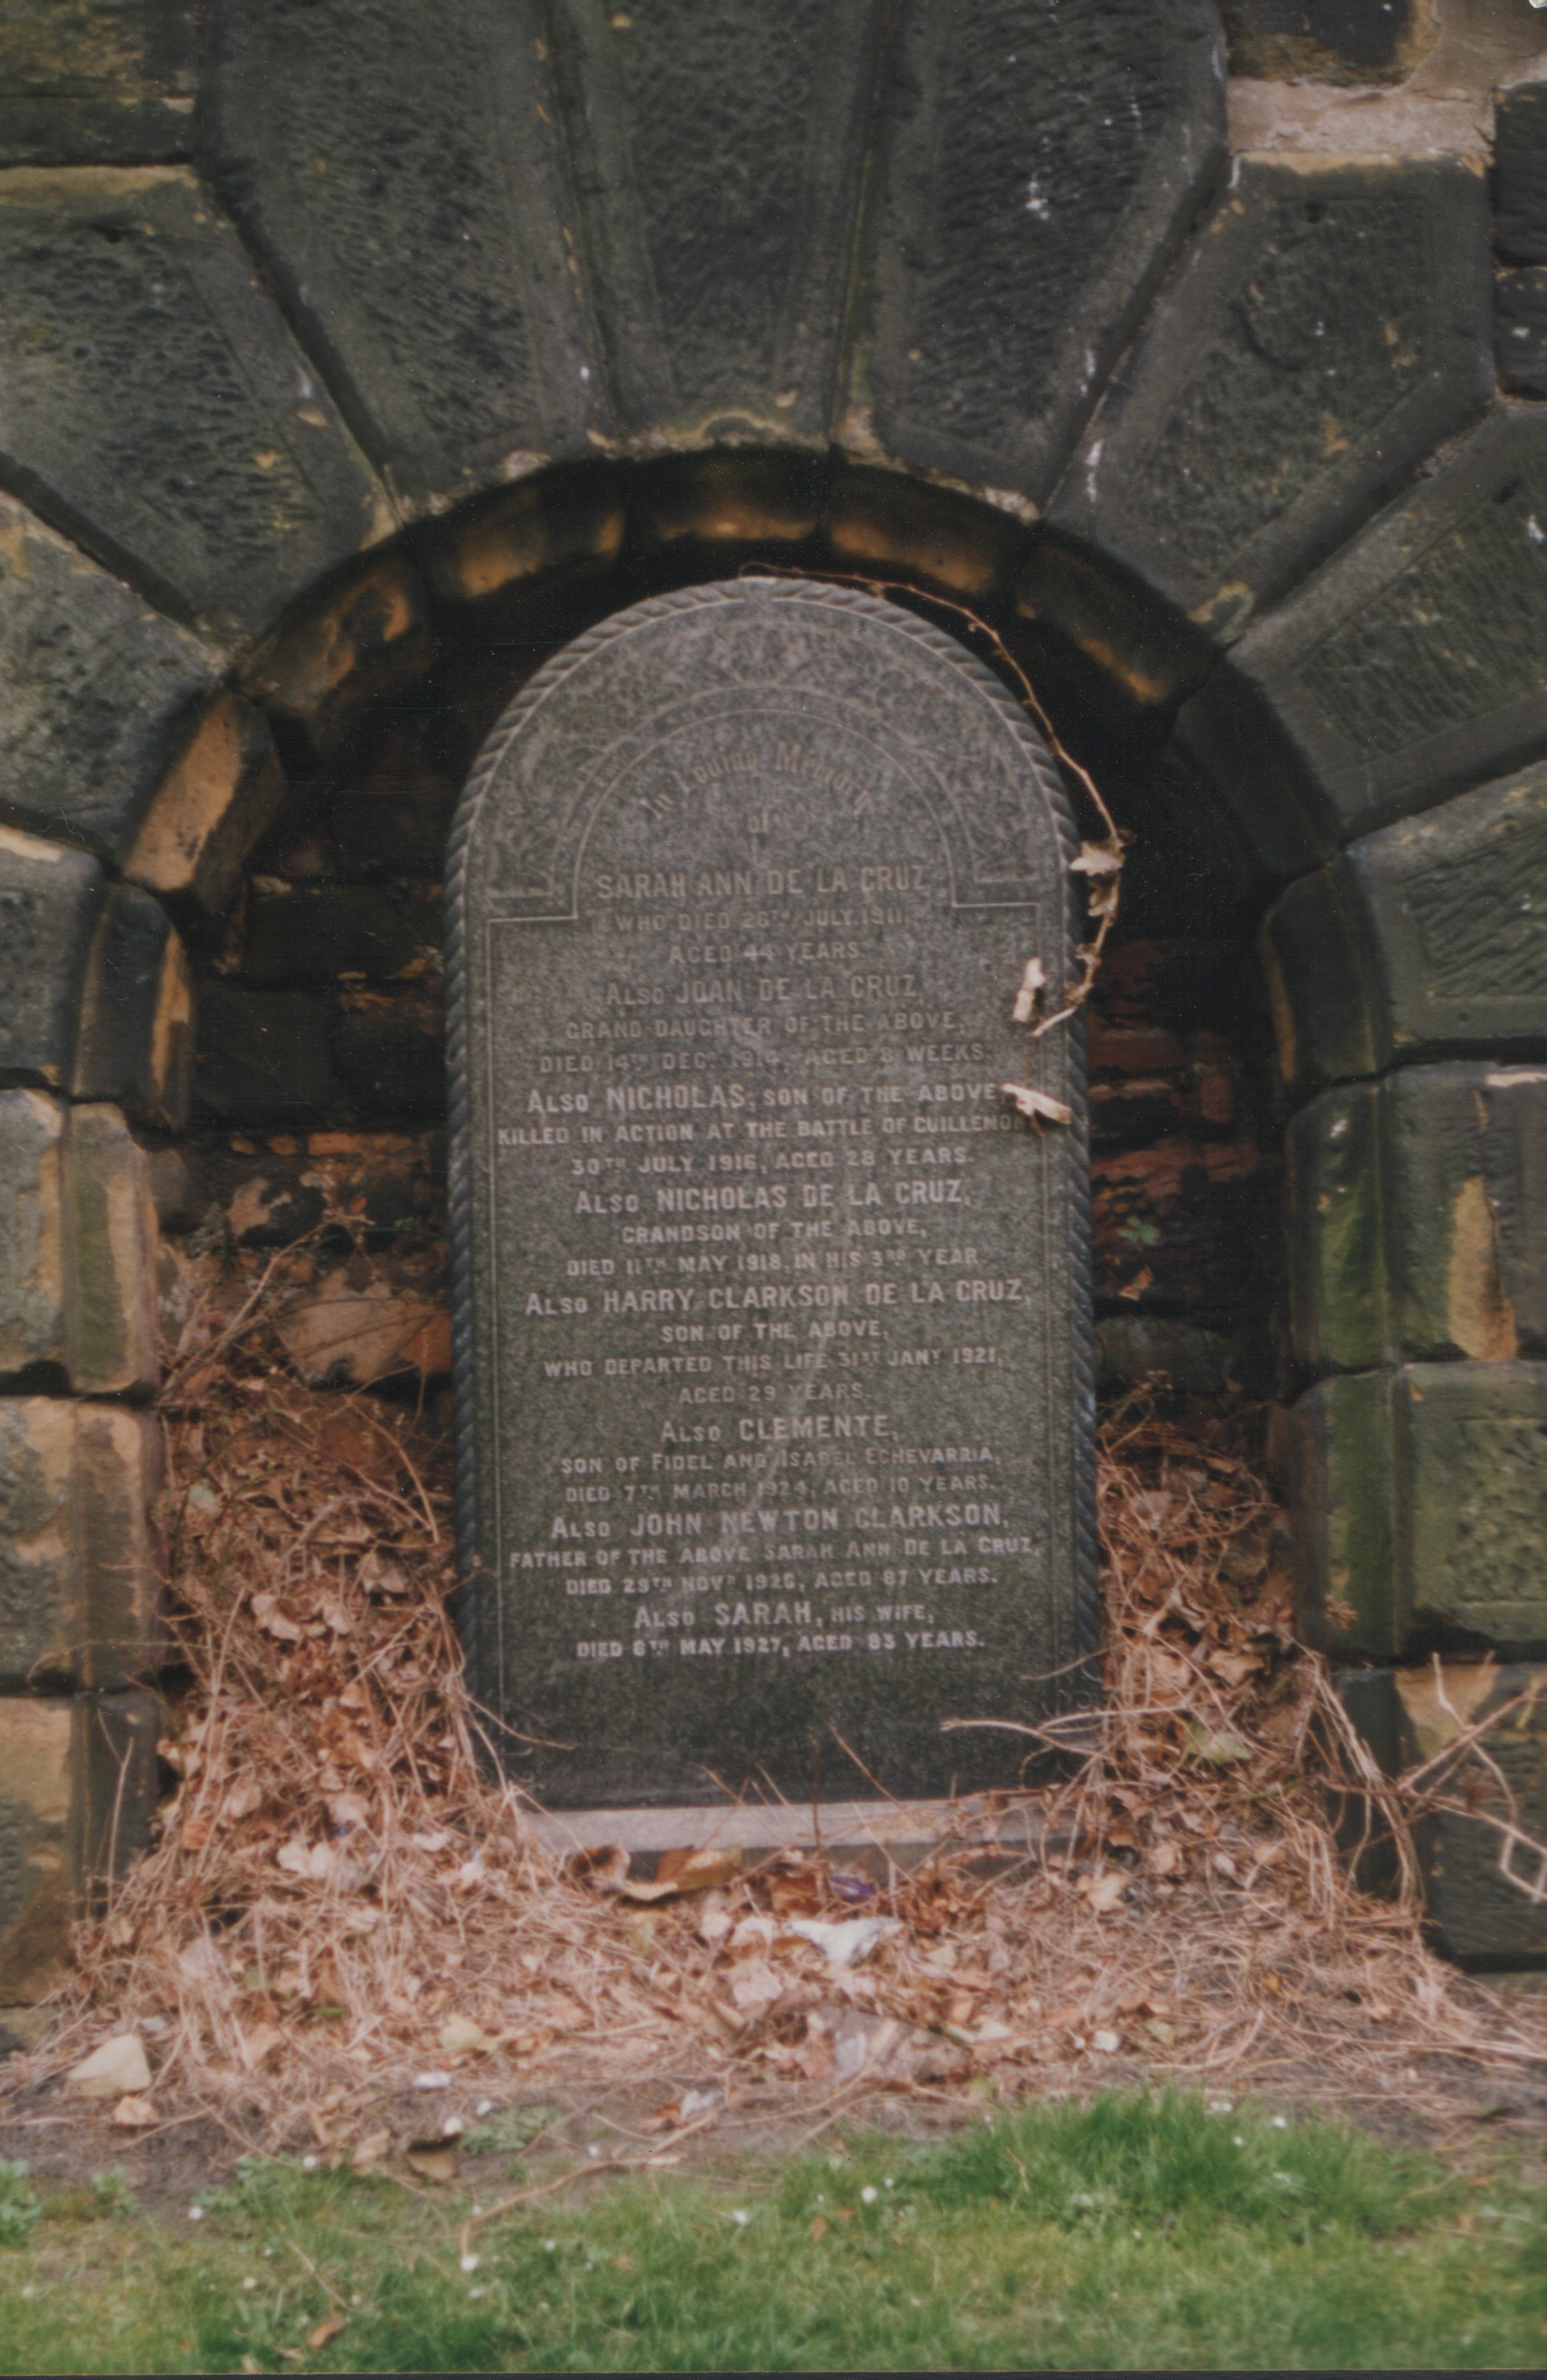 File:Gravestone St James.jpg - Wikimedia Commons